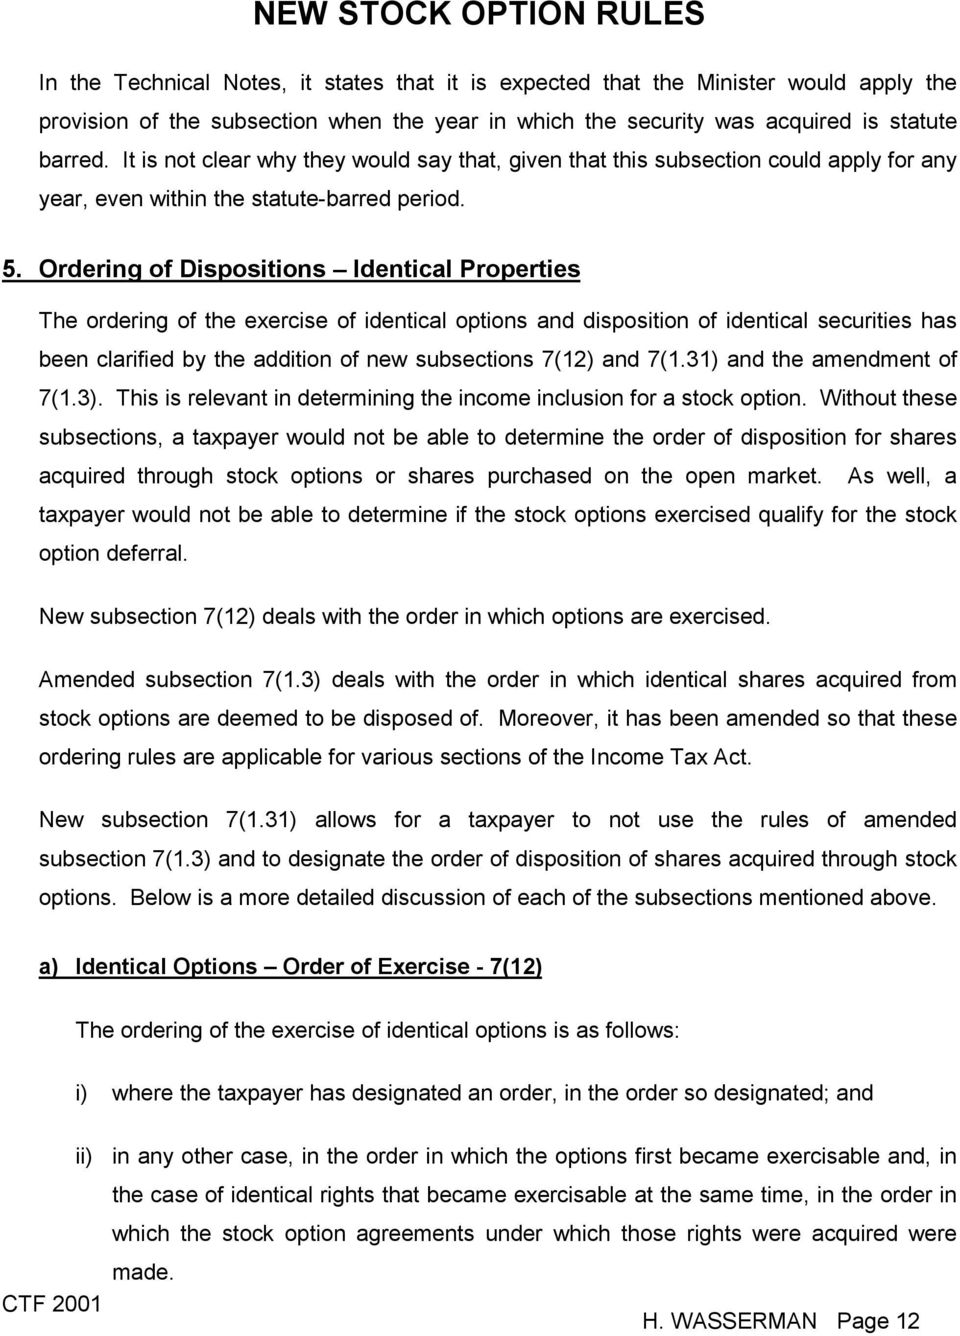 Ordering of Dispositions Identical Properties The ordering of the exercise of identical options and disposition of identical securities has been clarified by the addition of new subsections 7(12) and